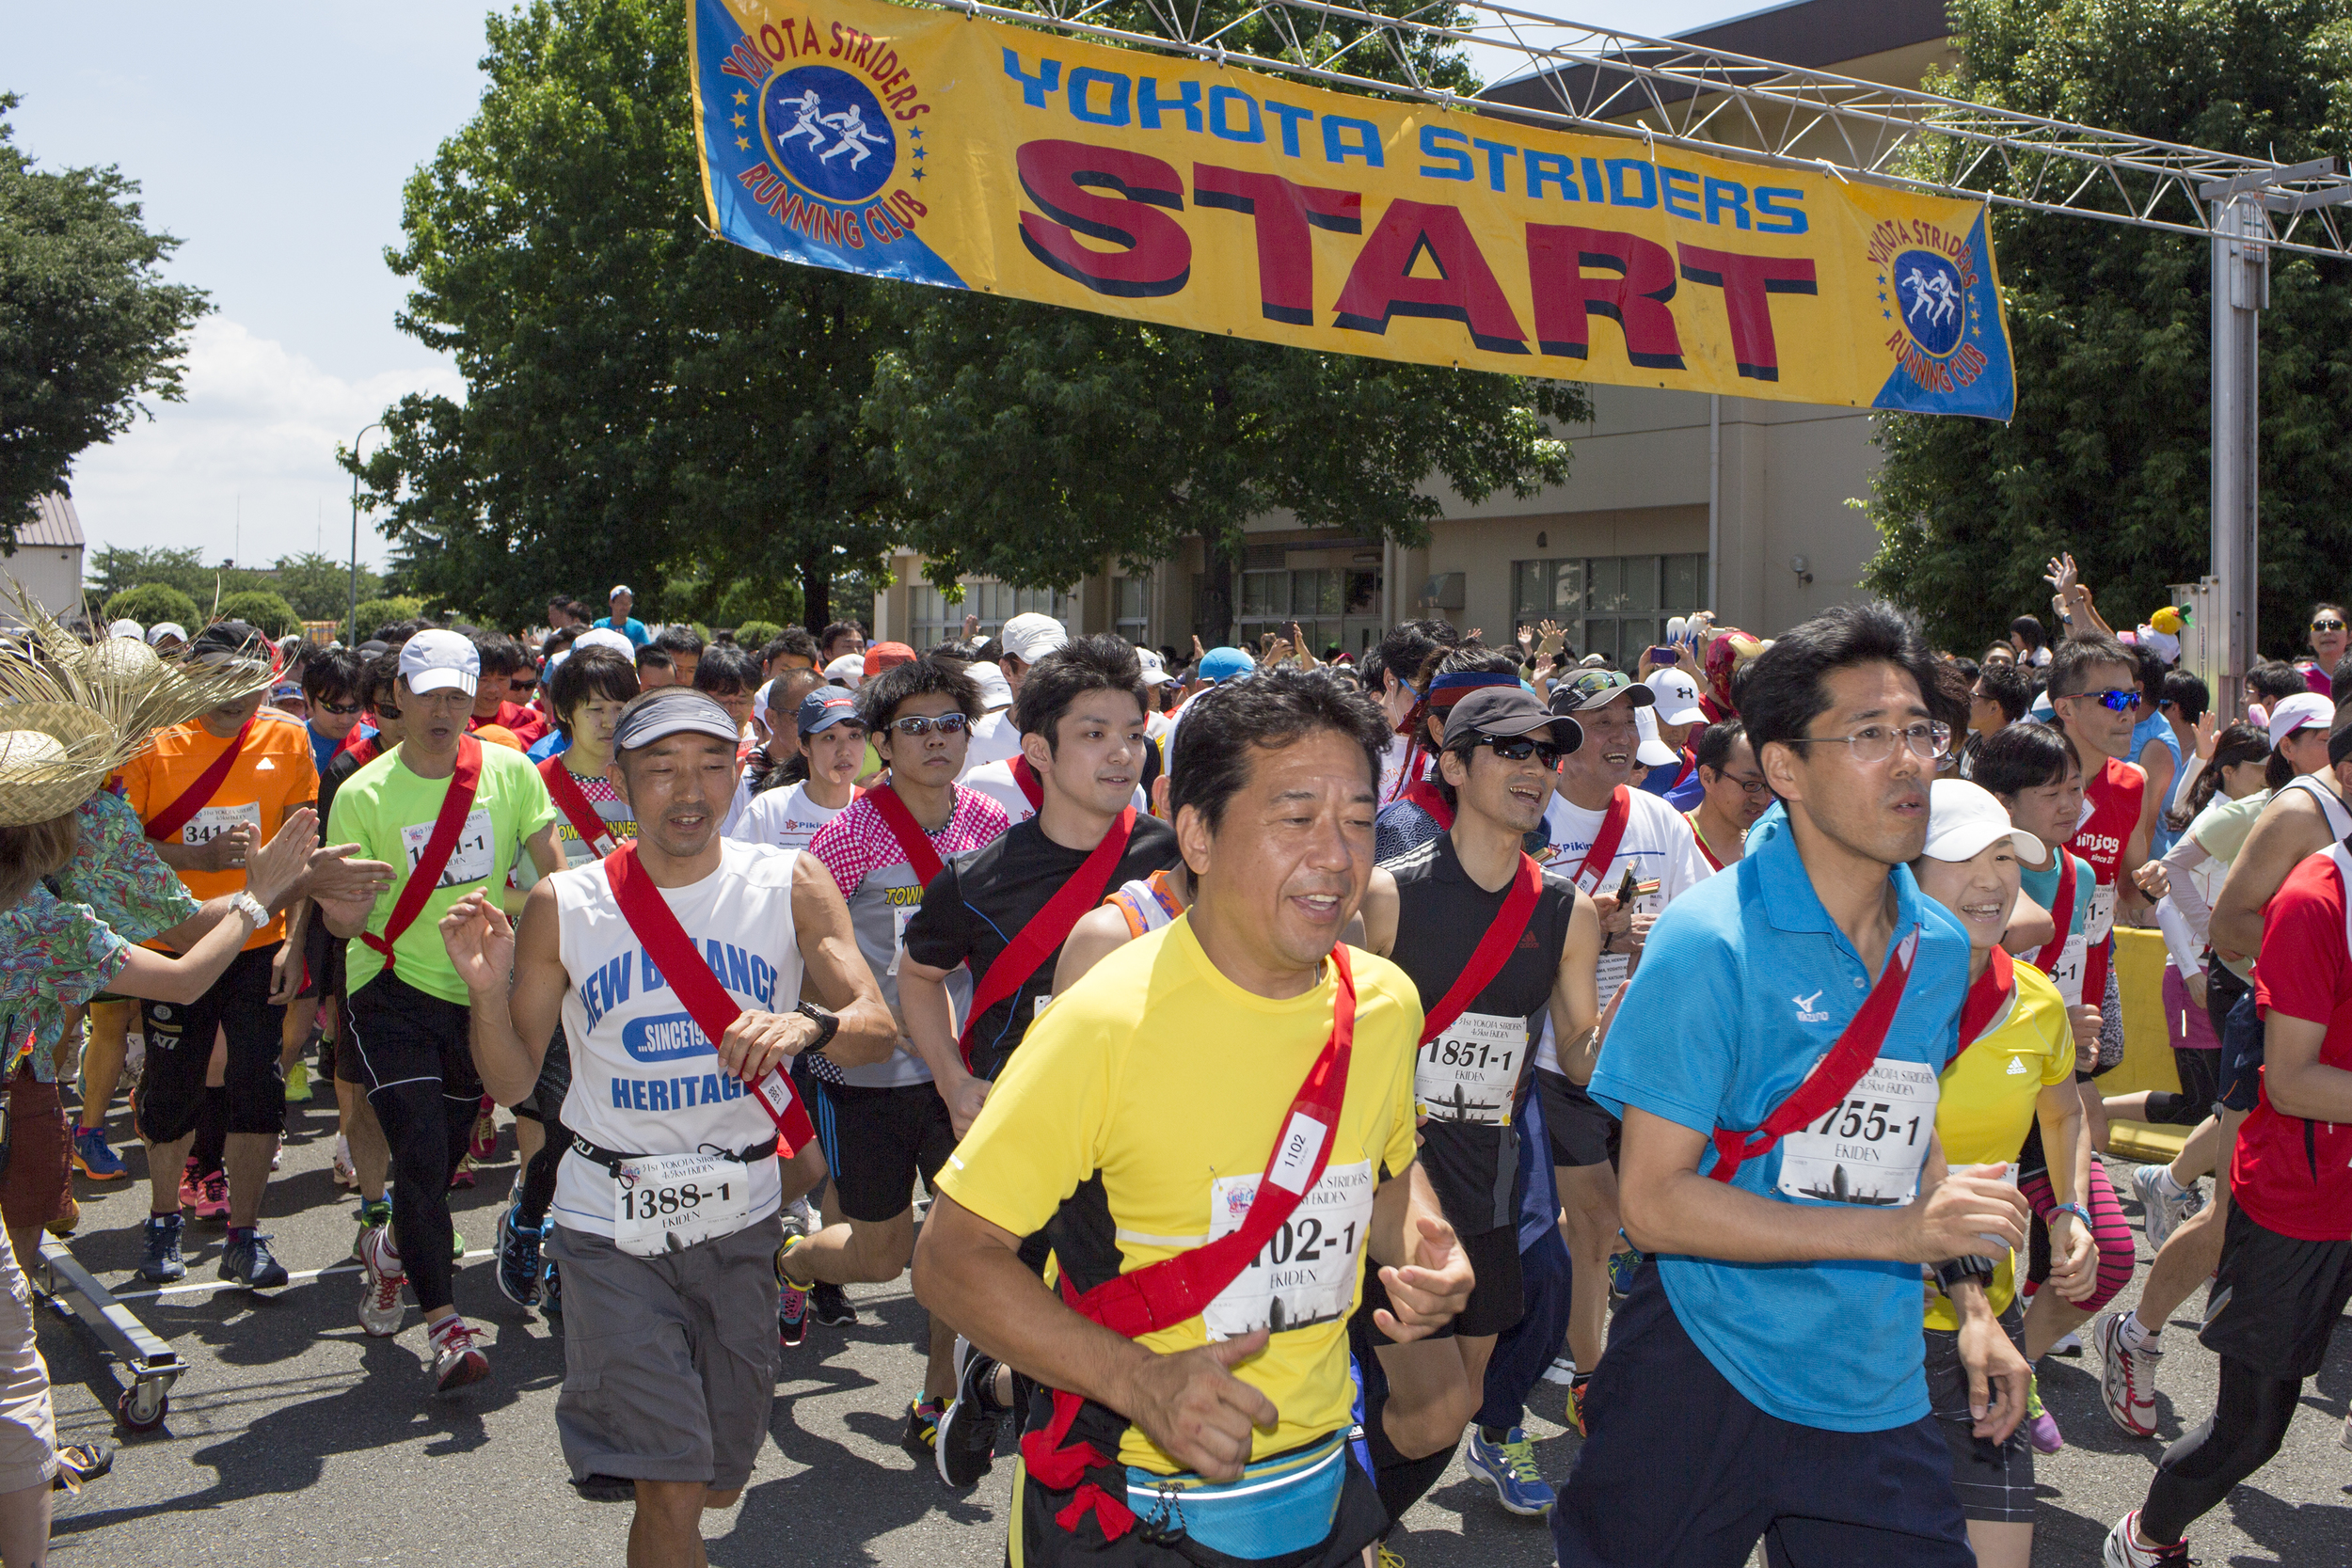 The Yokota Striders Running Club sponsored the 31st annual Ekiden Run at Yokota Air Base, Japan, June 7, 2015. The event was open to the public allowing over 5,800 runners and their families from on- and off-base the opportunity to run. (U.S. Air Force photo by Osakabe Yasuo/Released)